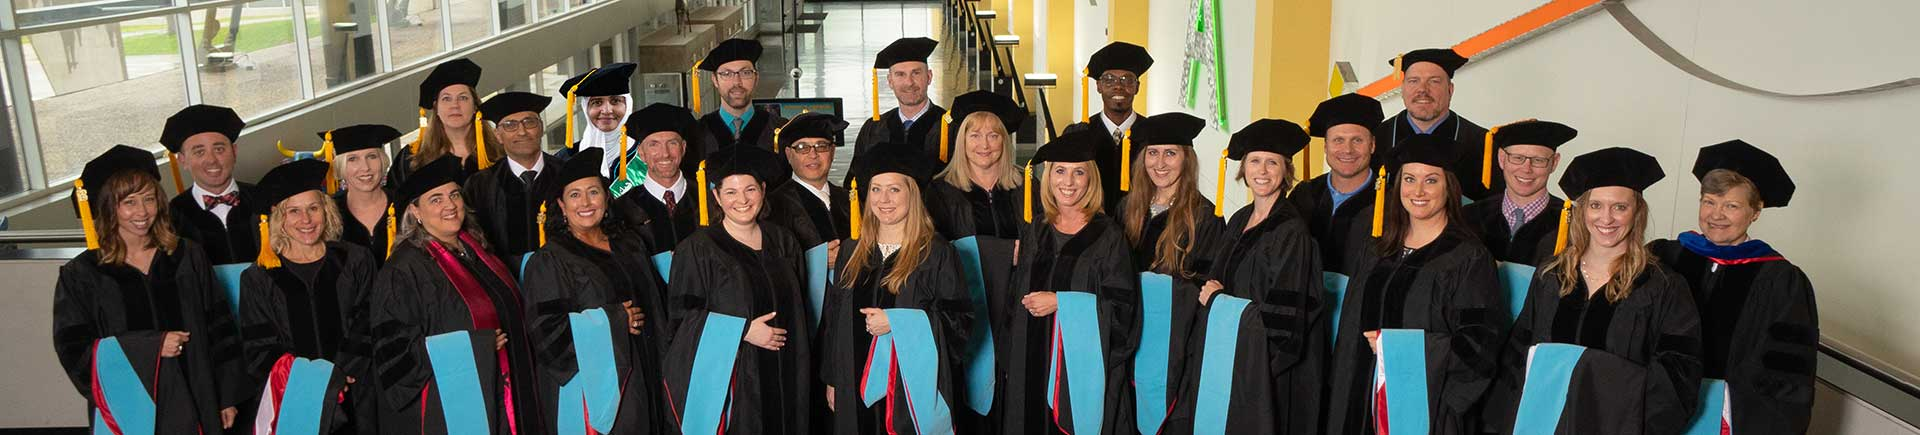 Doctoral-Grad-Group-Photo